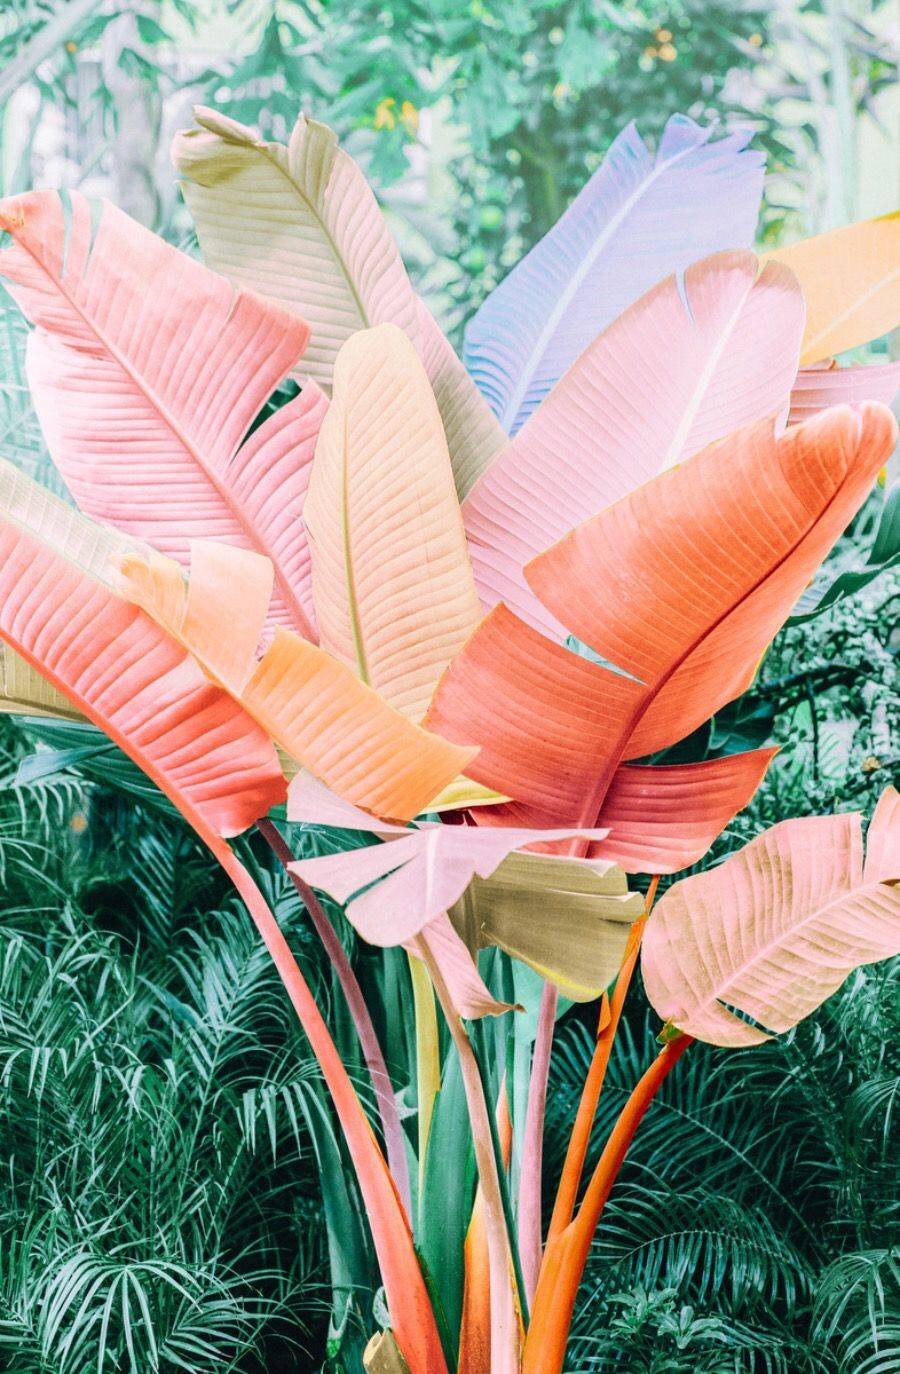 Perceived Reality Artsandculture Vsco Journal Colorful